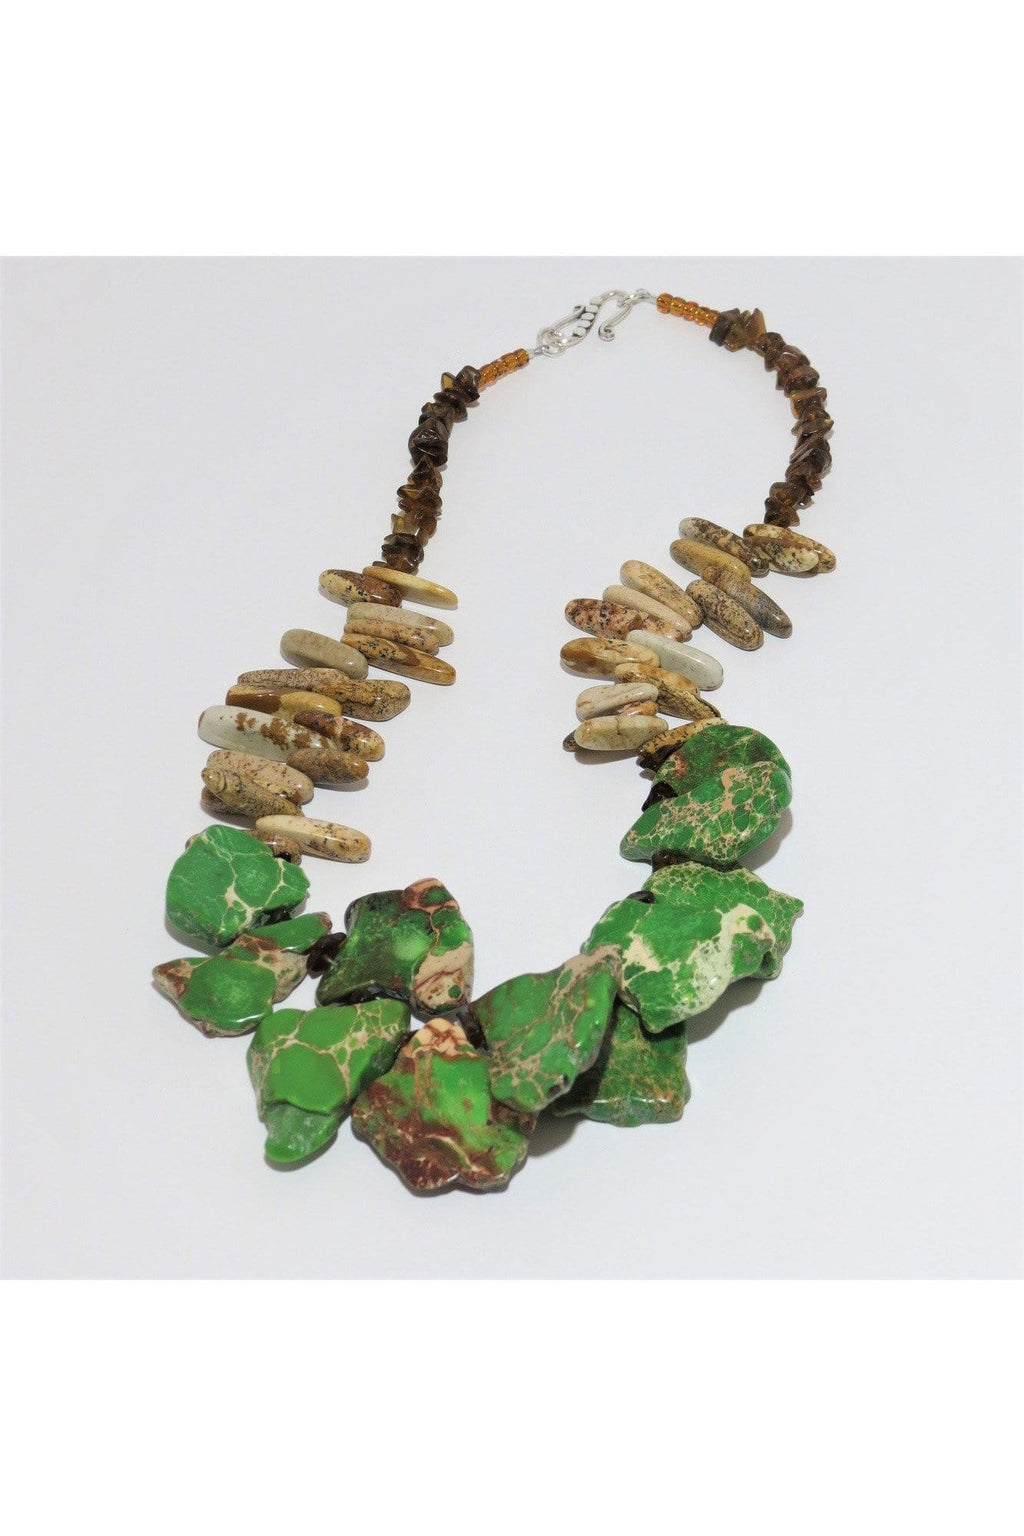 Green Turquoise and Jasper Necklace - Himelhoch's